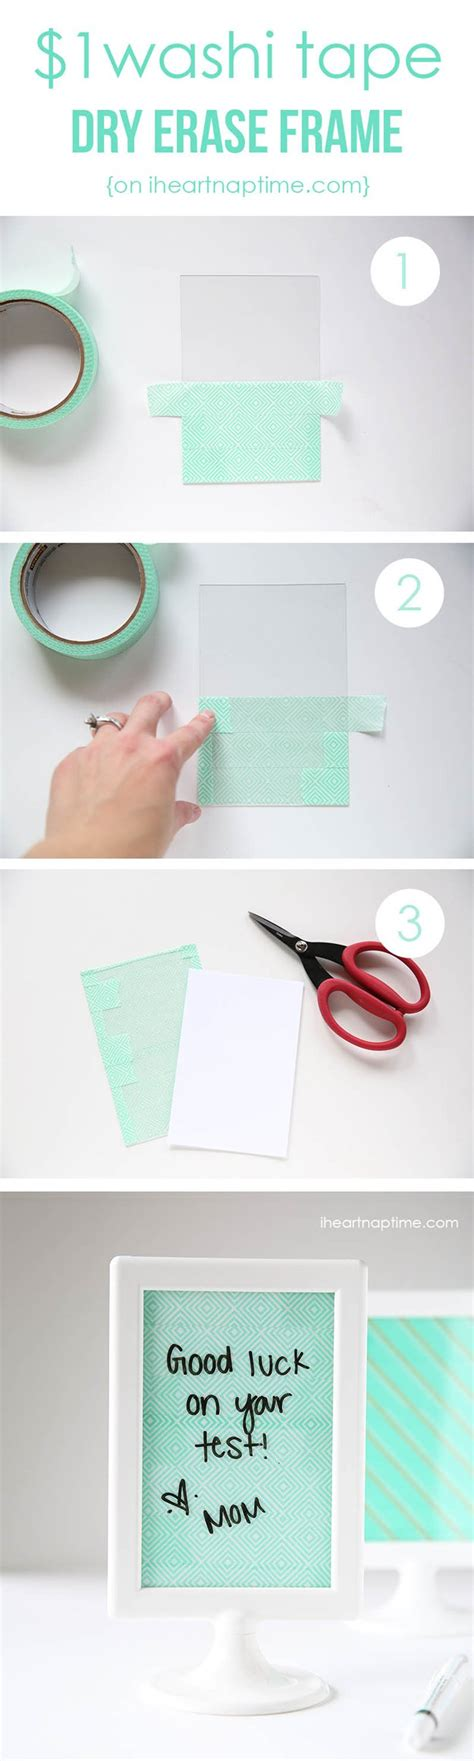 Washi Tape Diy | 100 creative ways to use washi tape diy crafts